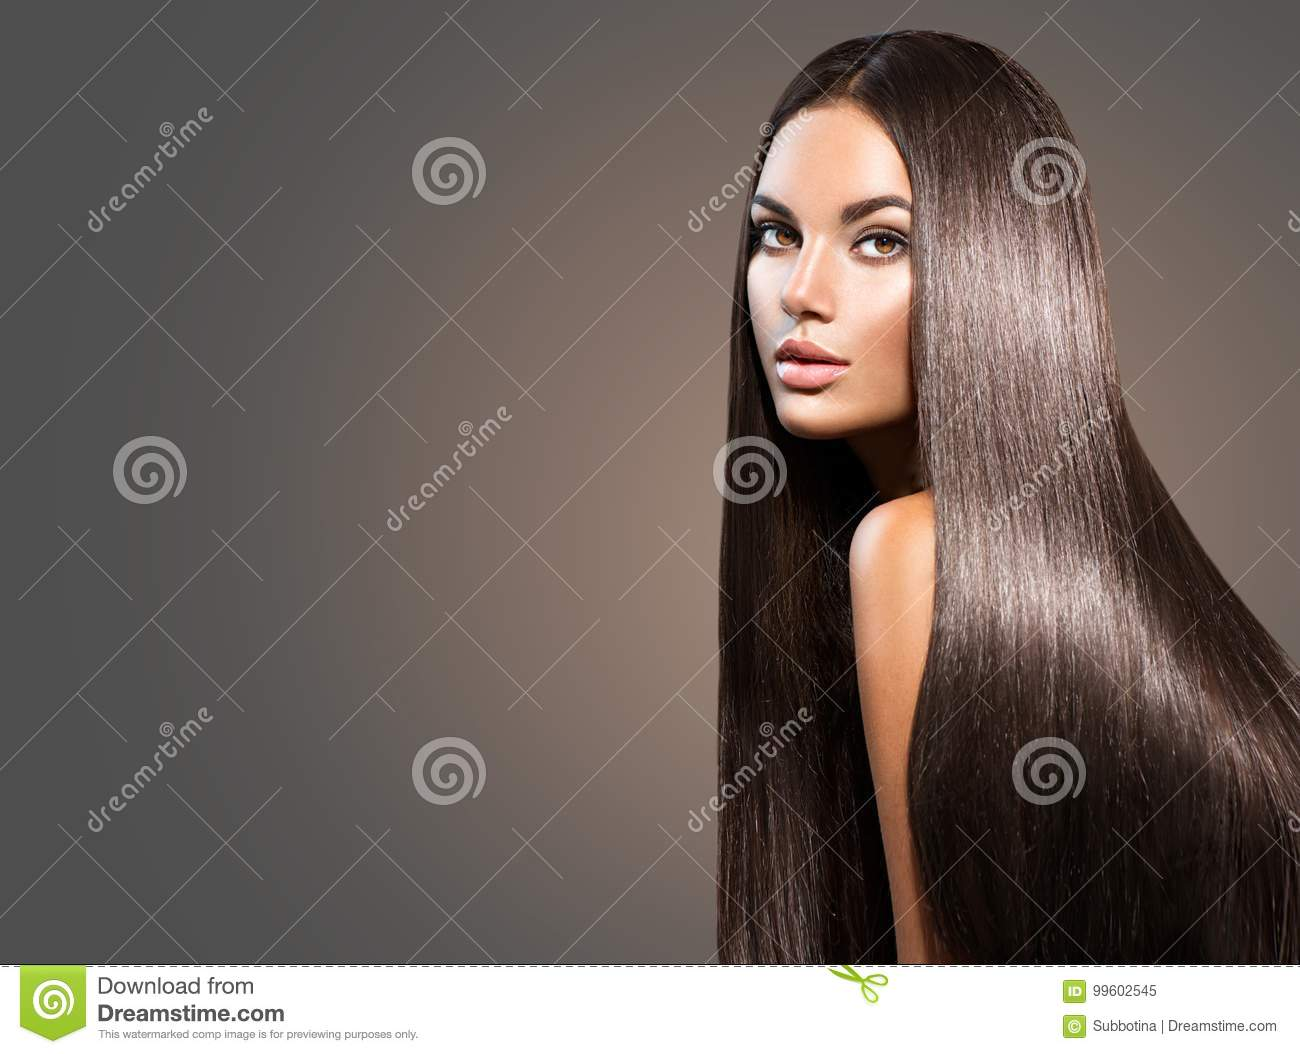 Beautiful long hair. Beauty woman with straight black hair